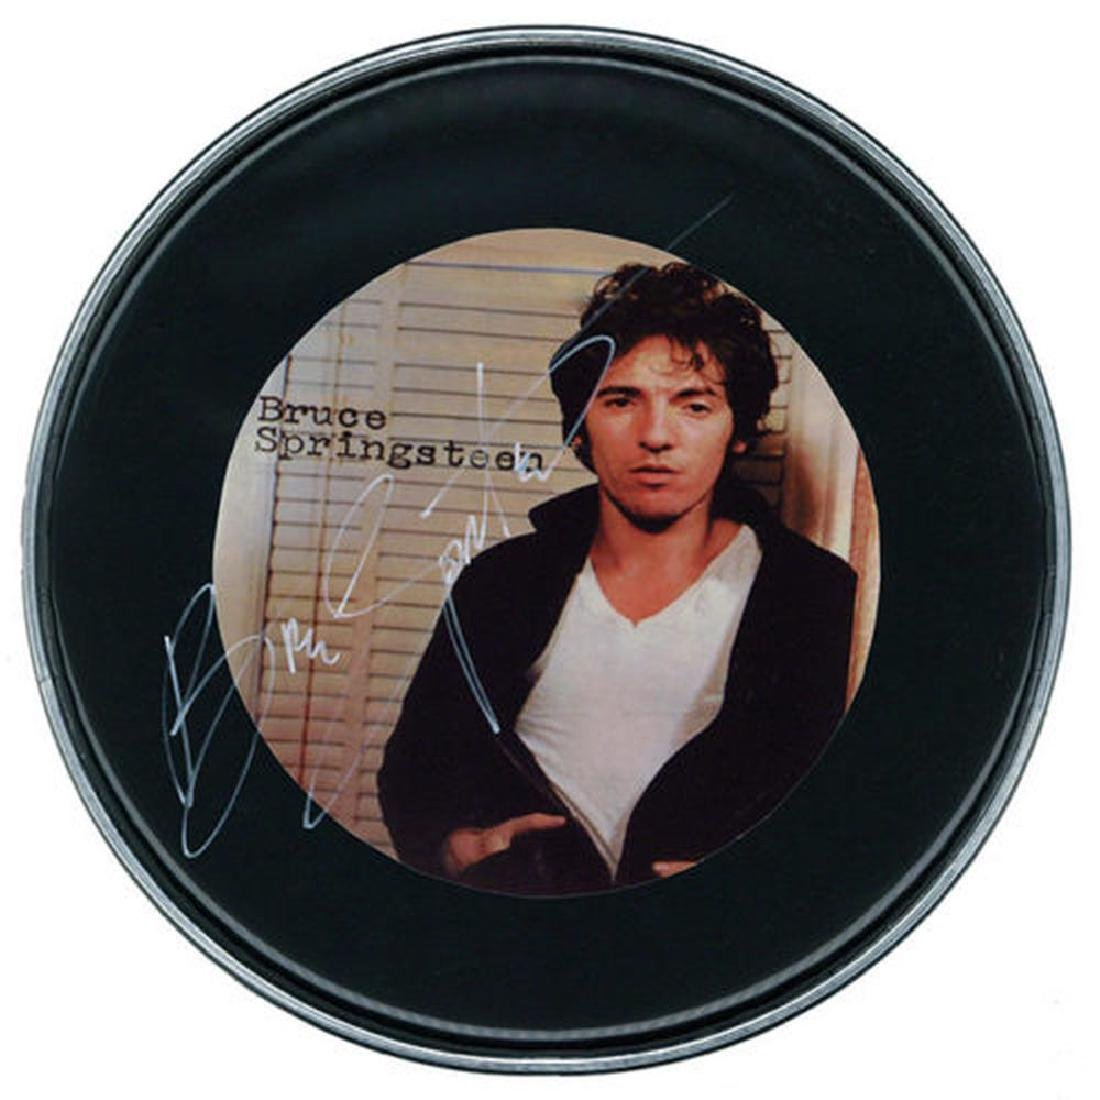 Bruce Springsteen Signed Drumhead